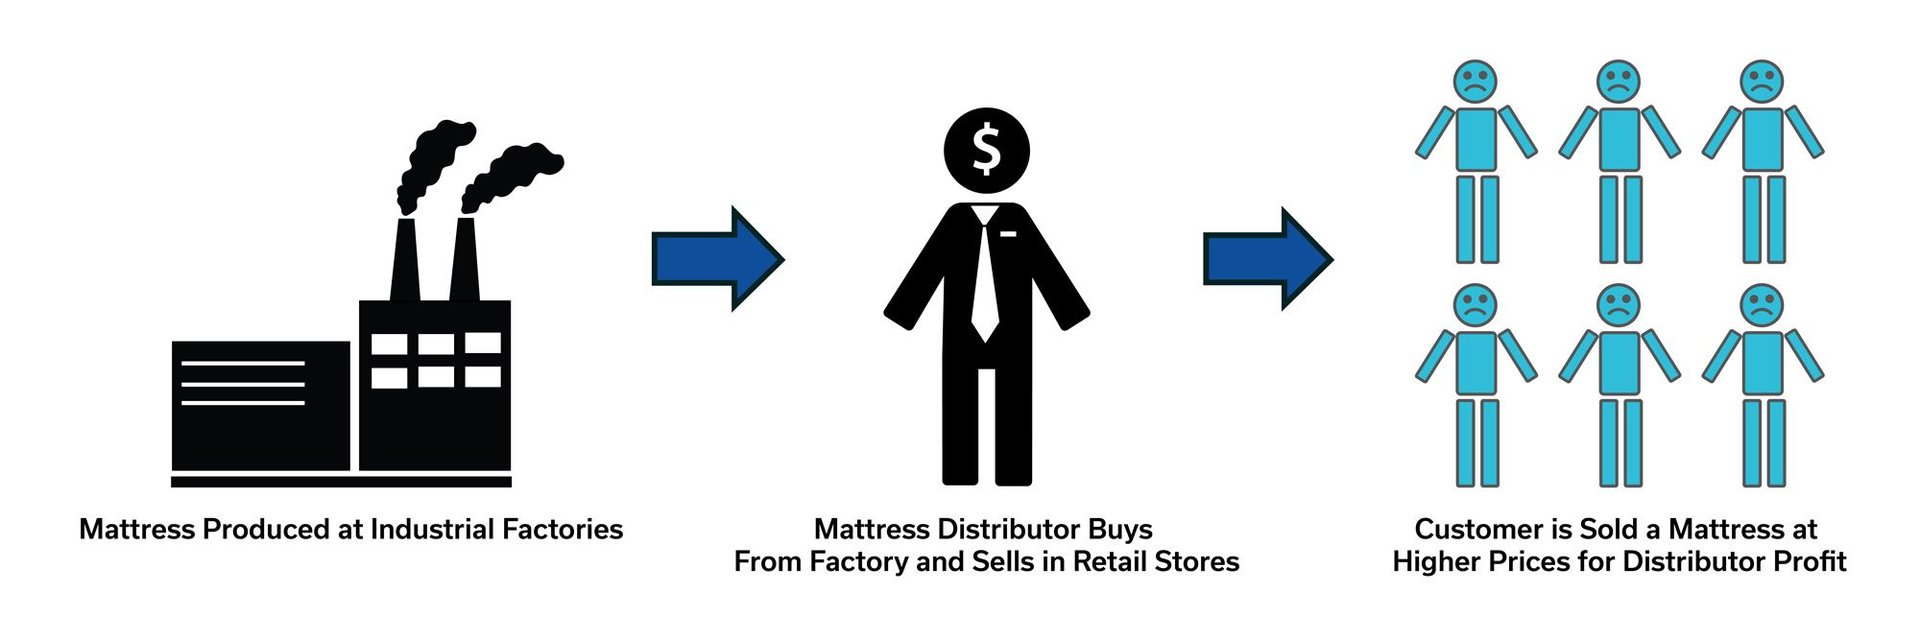 Other Mattress Companies Process: Step 1 Mattress Produced at Industrial Factories, Step 2 Mattress Distributor Buys From Factory and Sells in Retail Stores, Step 3 Customer is Sold a Mattress at Higher Prices for Distributor Profit